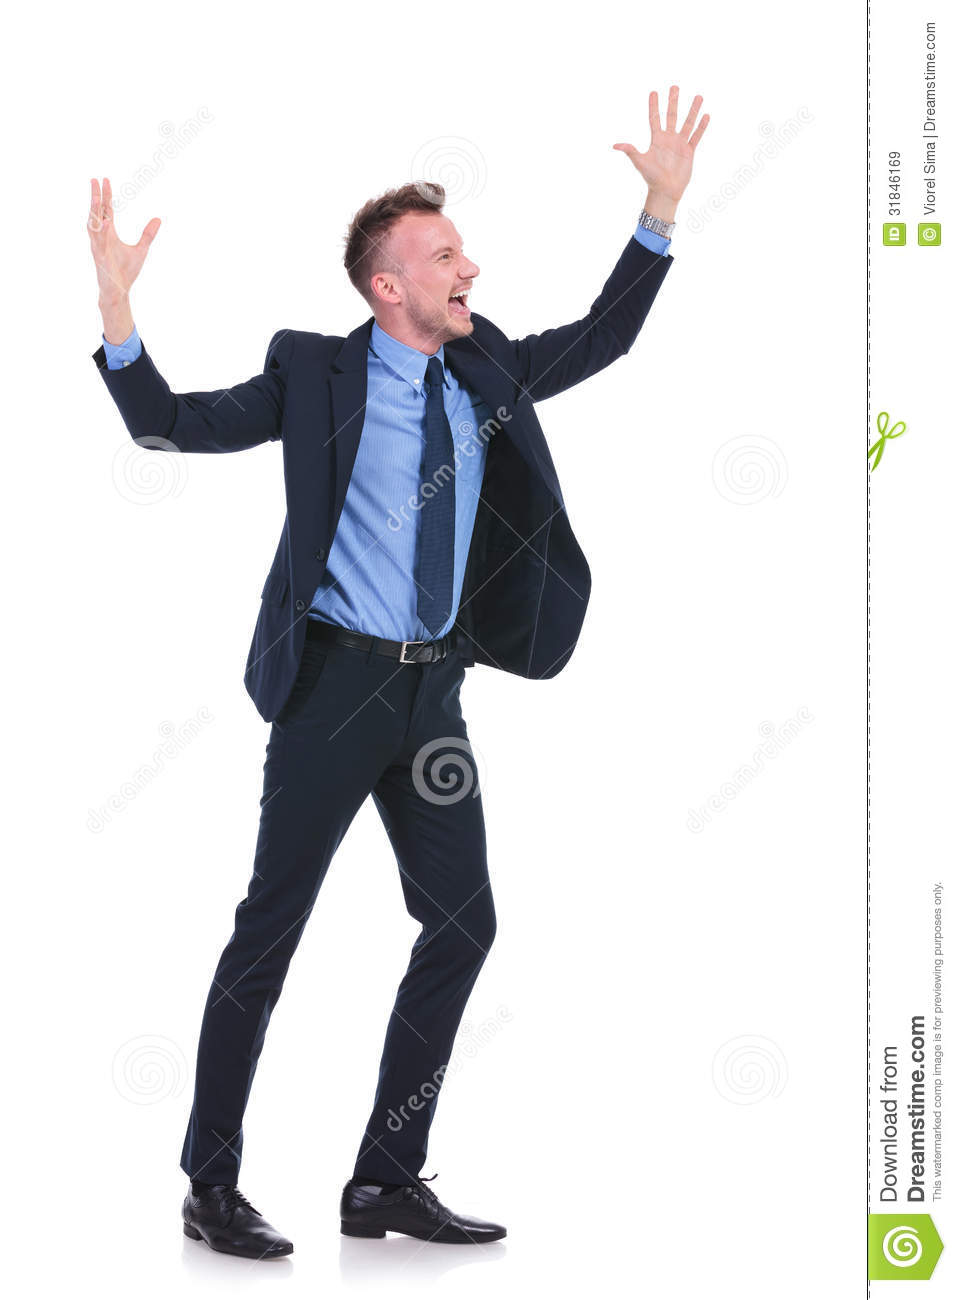 Business Man Cheering Royalty Free Stock Images - Image